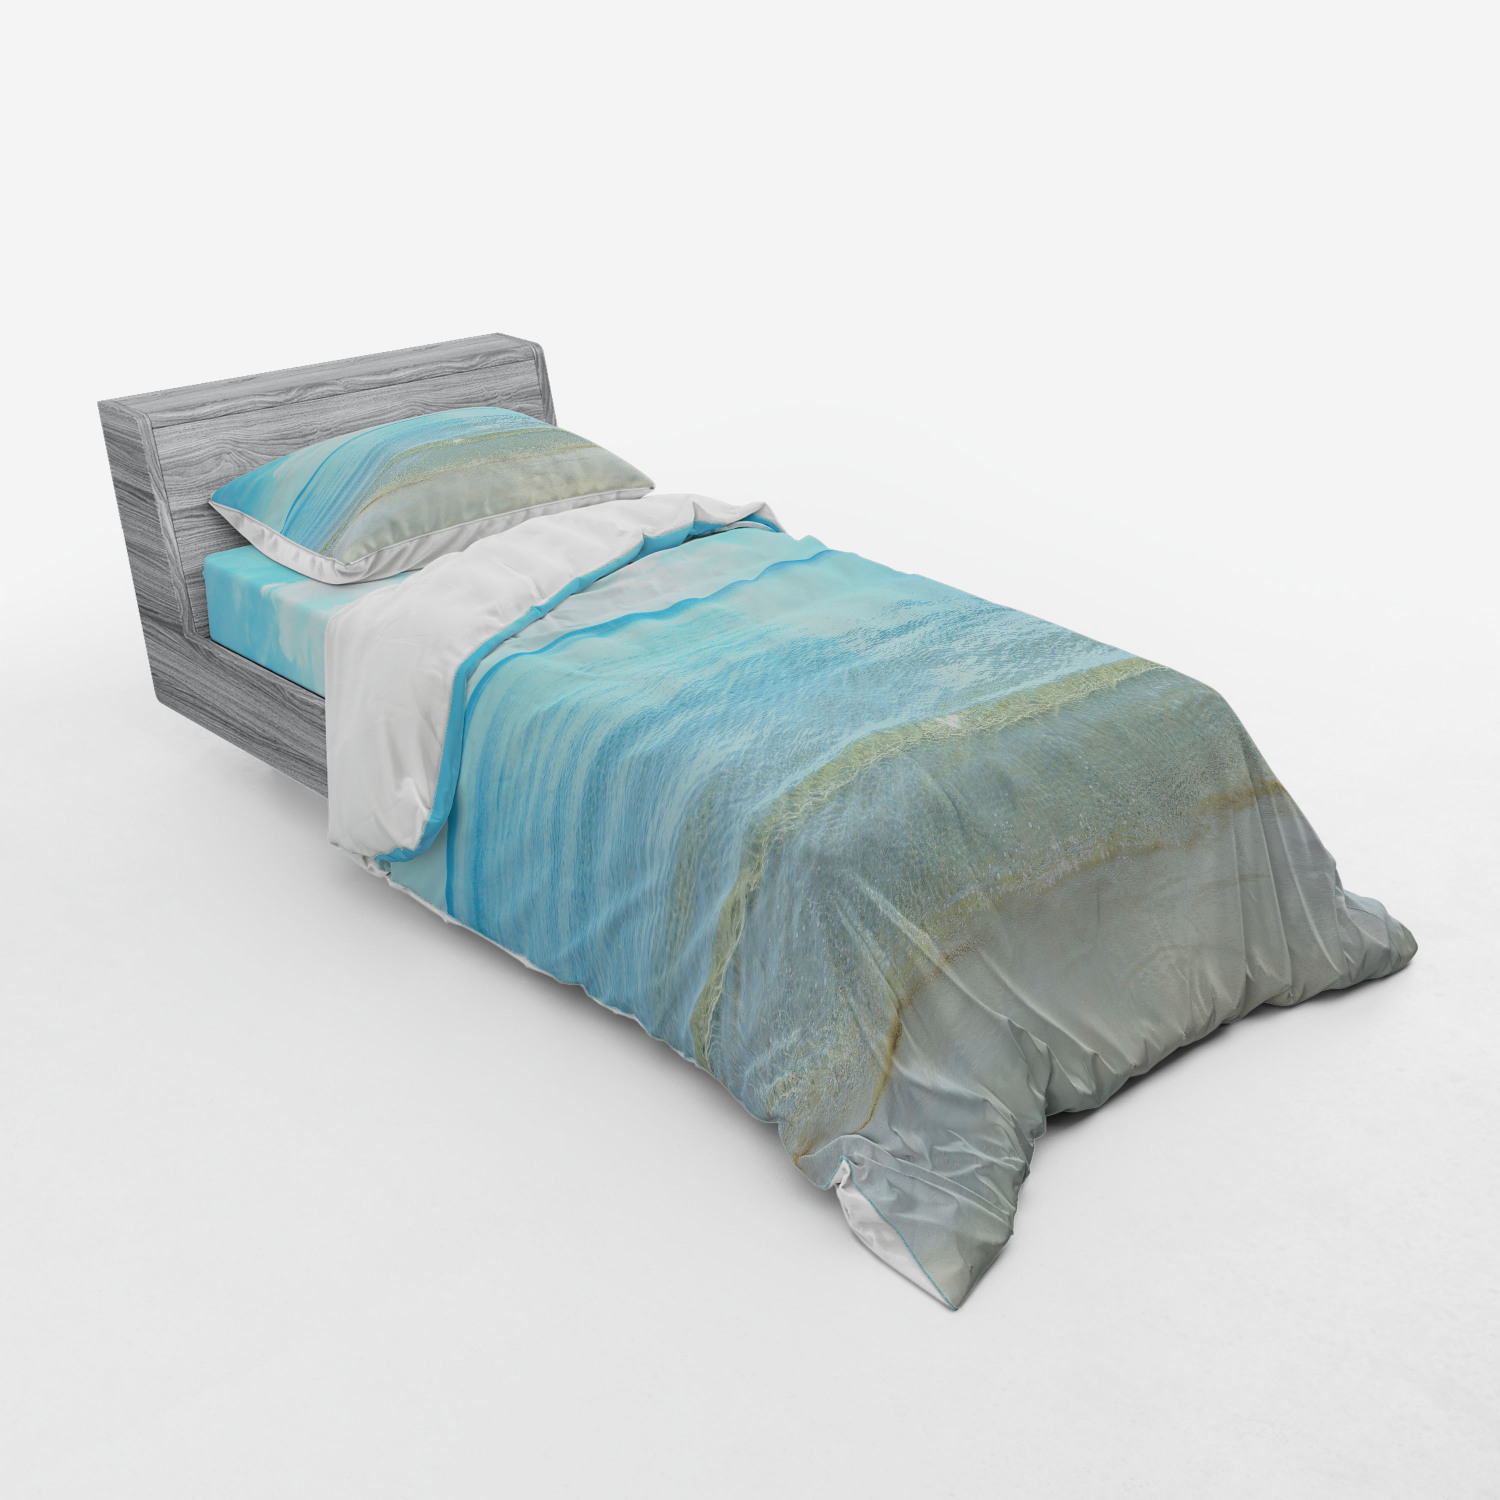 thumbnail 173 - Ambesonne Summer Bedding Set Duvet Cover Sham Fitted Sheet in 3 Sizes